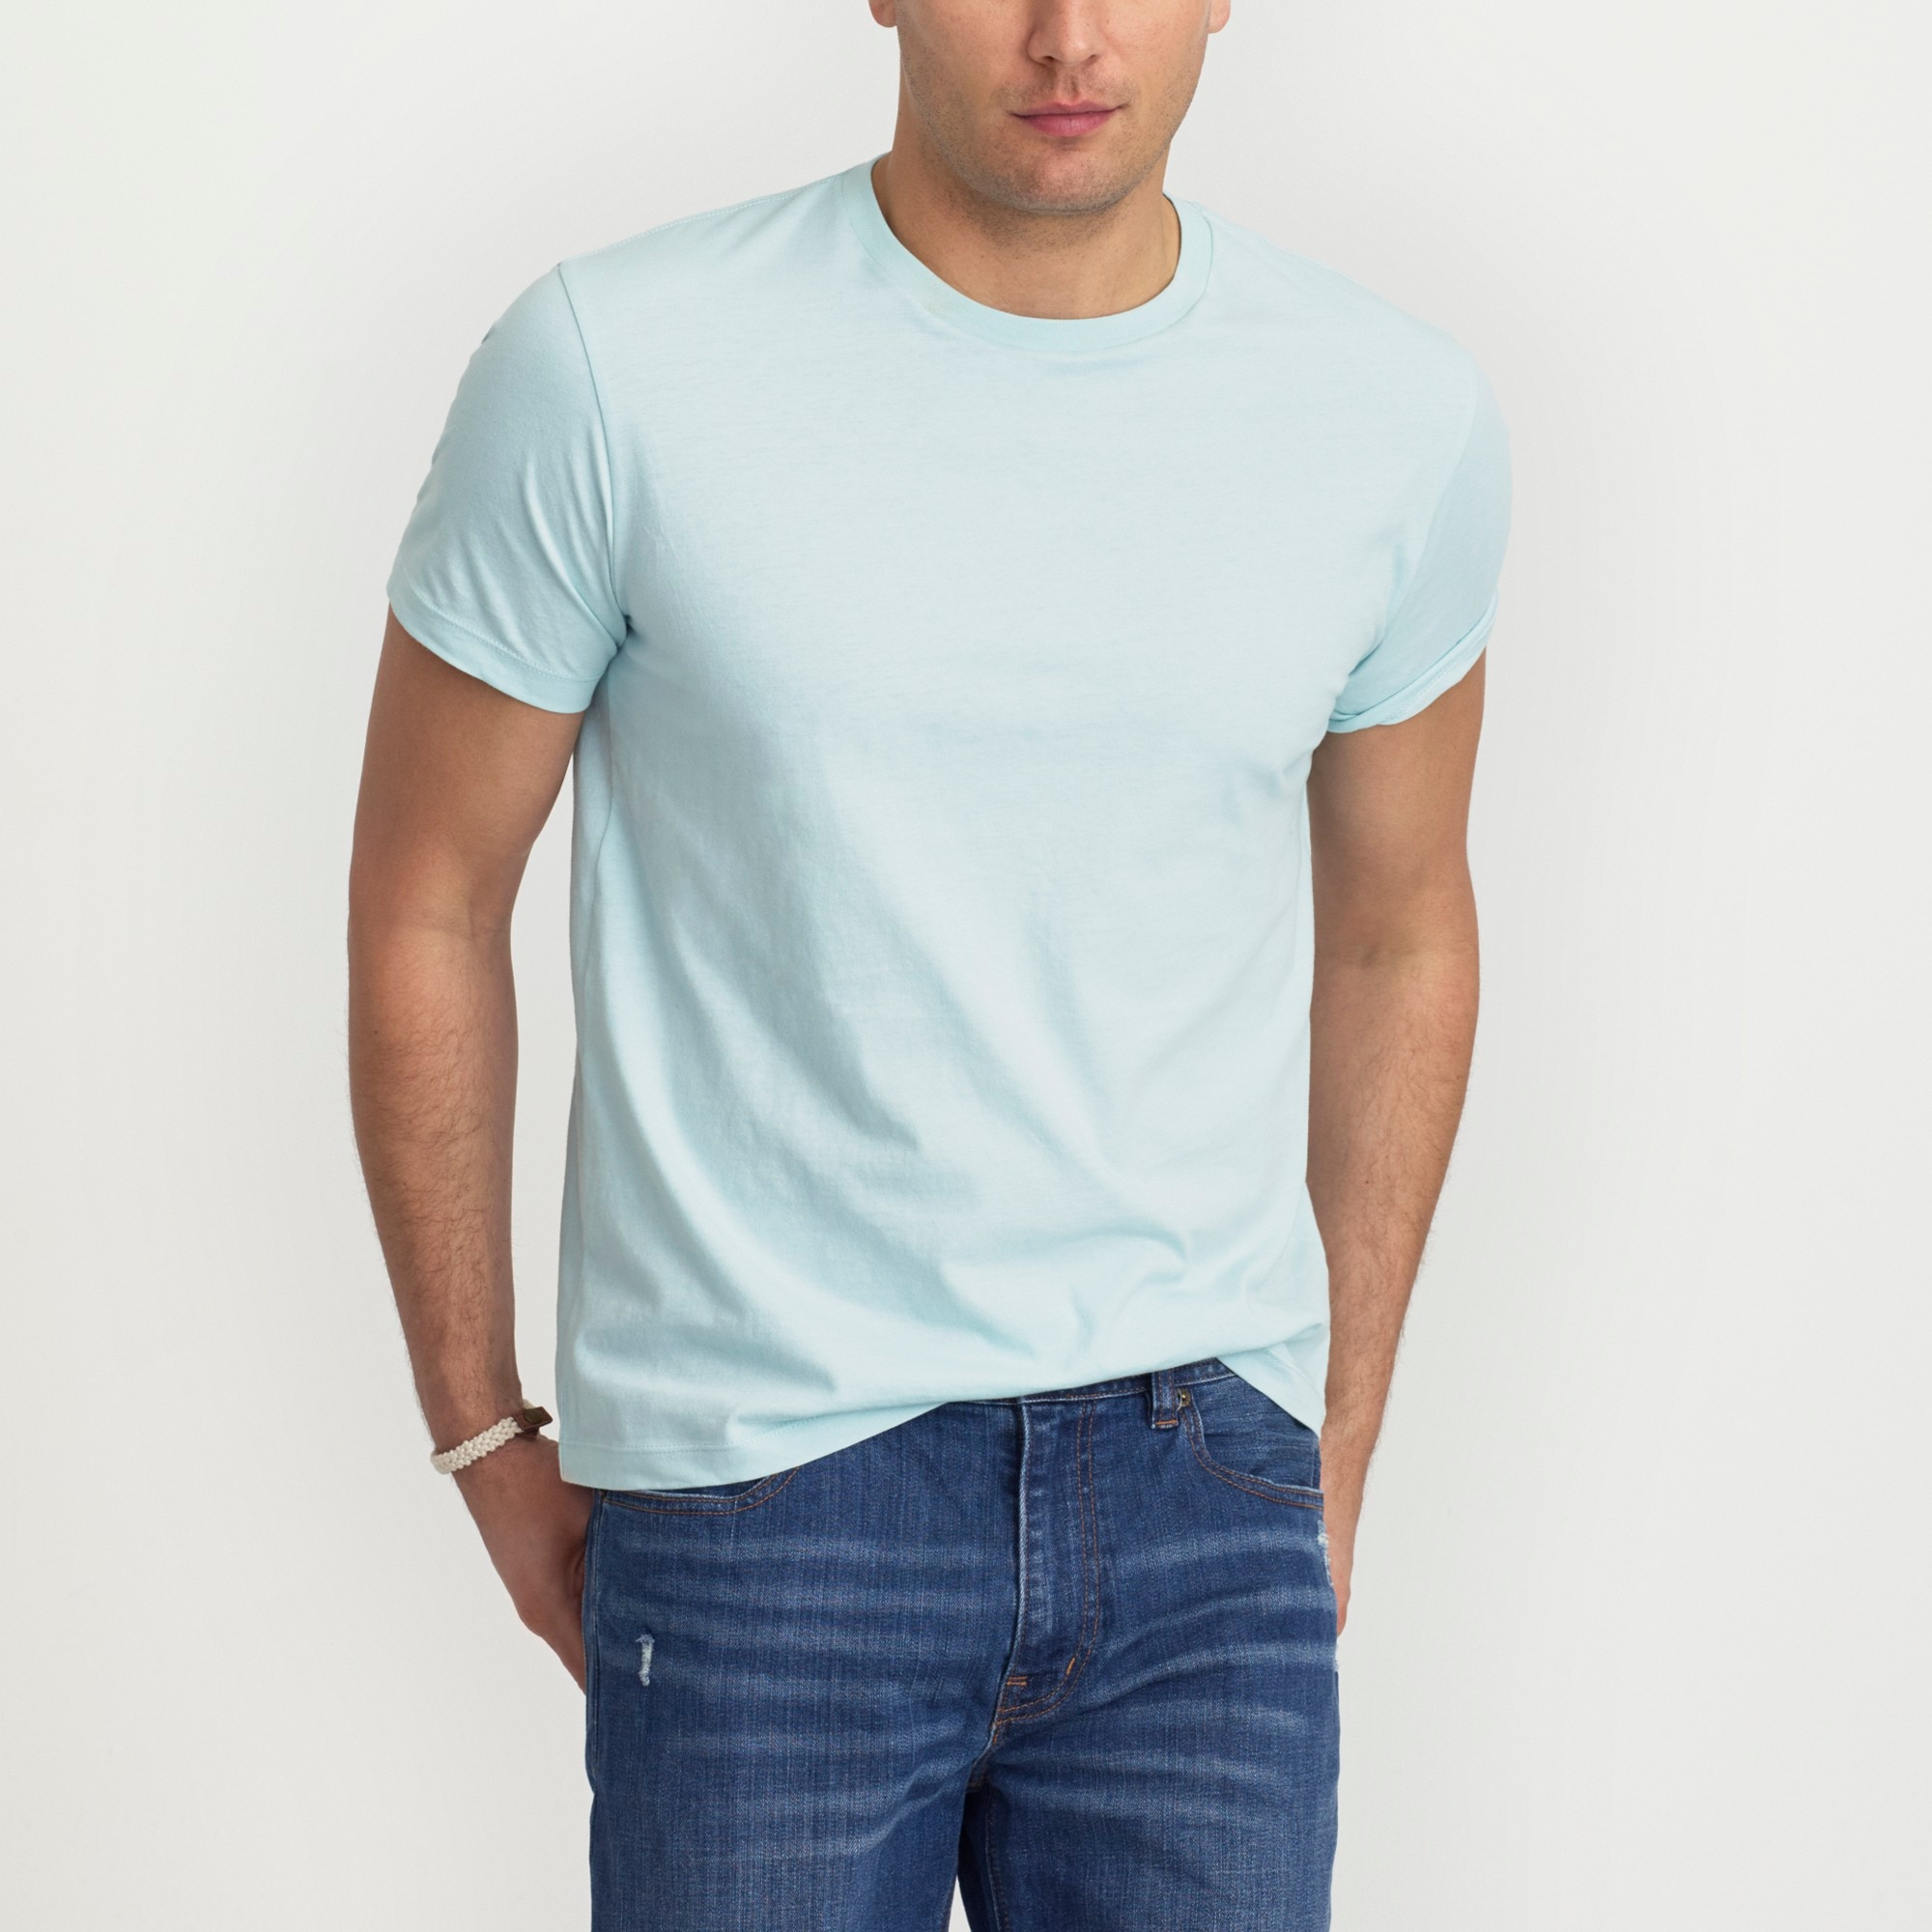 J.Crew Mercantile slim Broken-in T-shirt